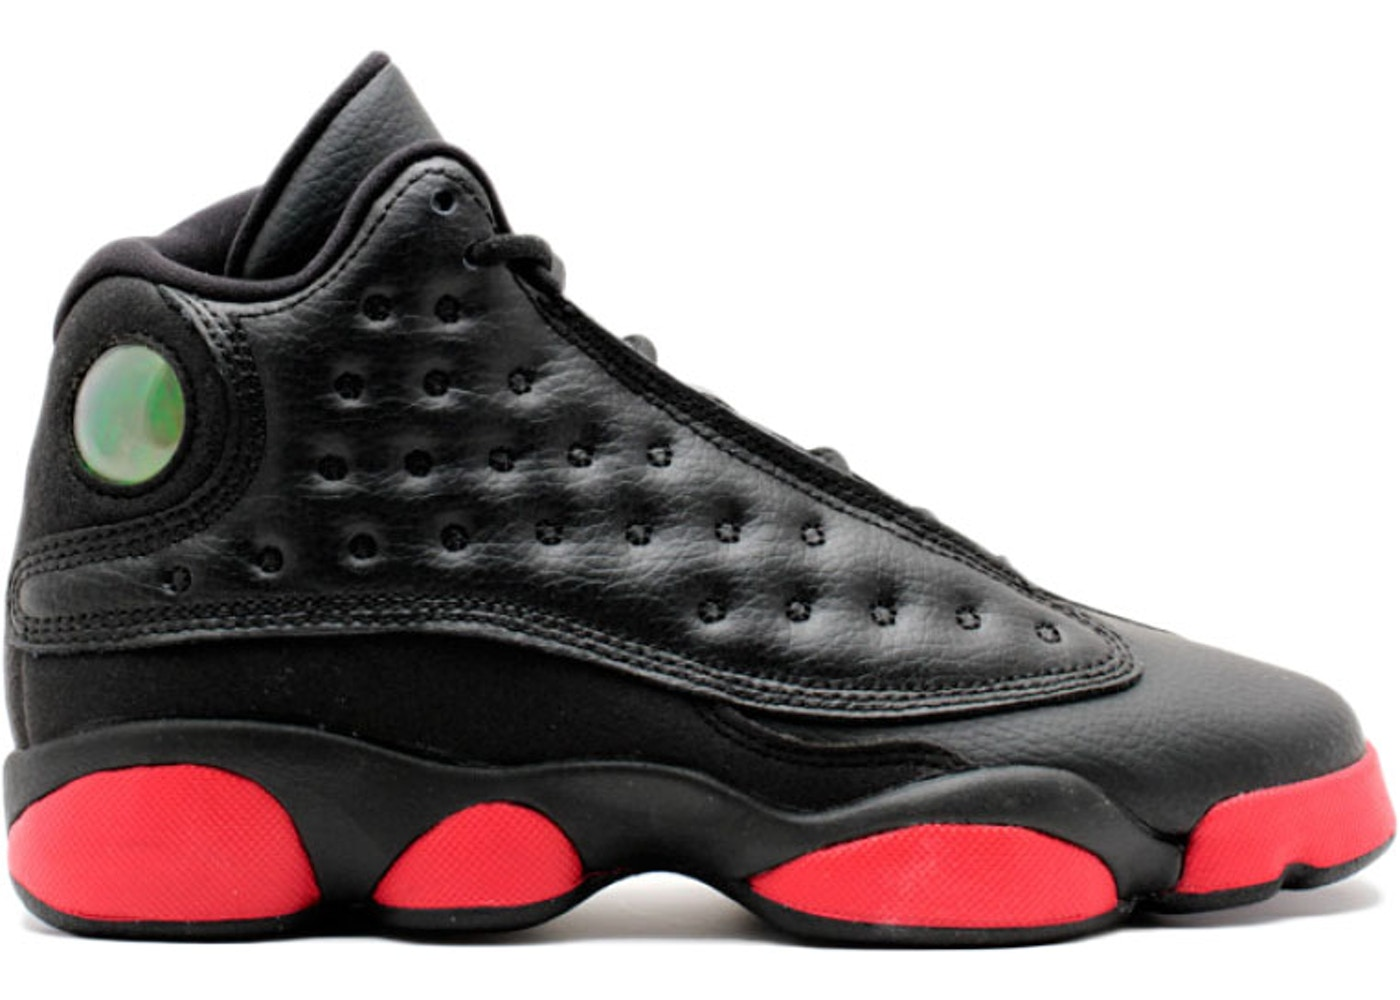 lowest price 82c4e e9816 Buy Air Jordan 13 Shoes   Deadstock Sneakers